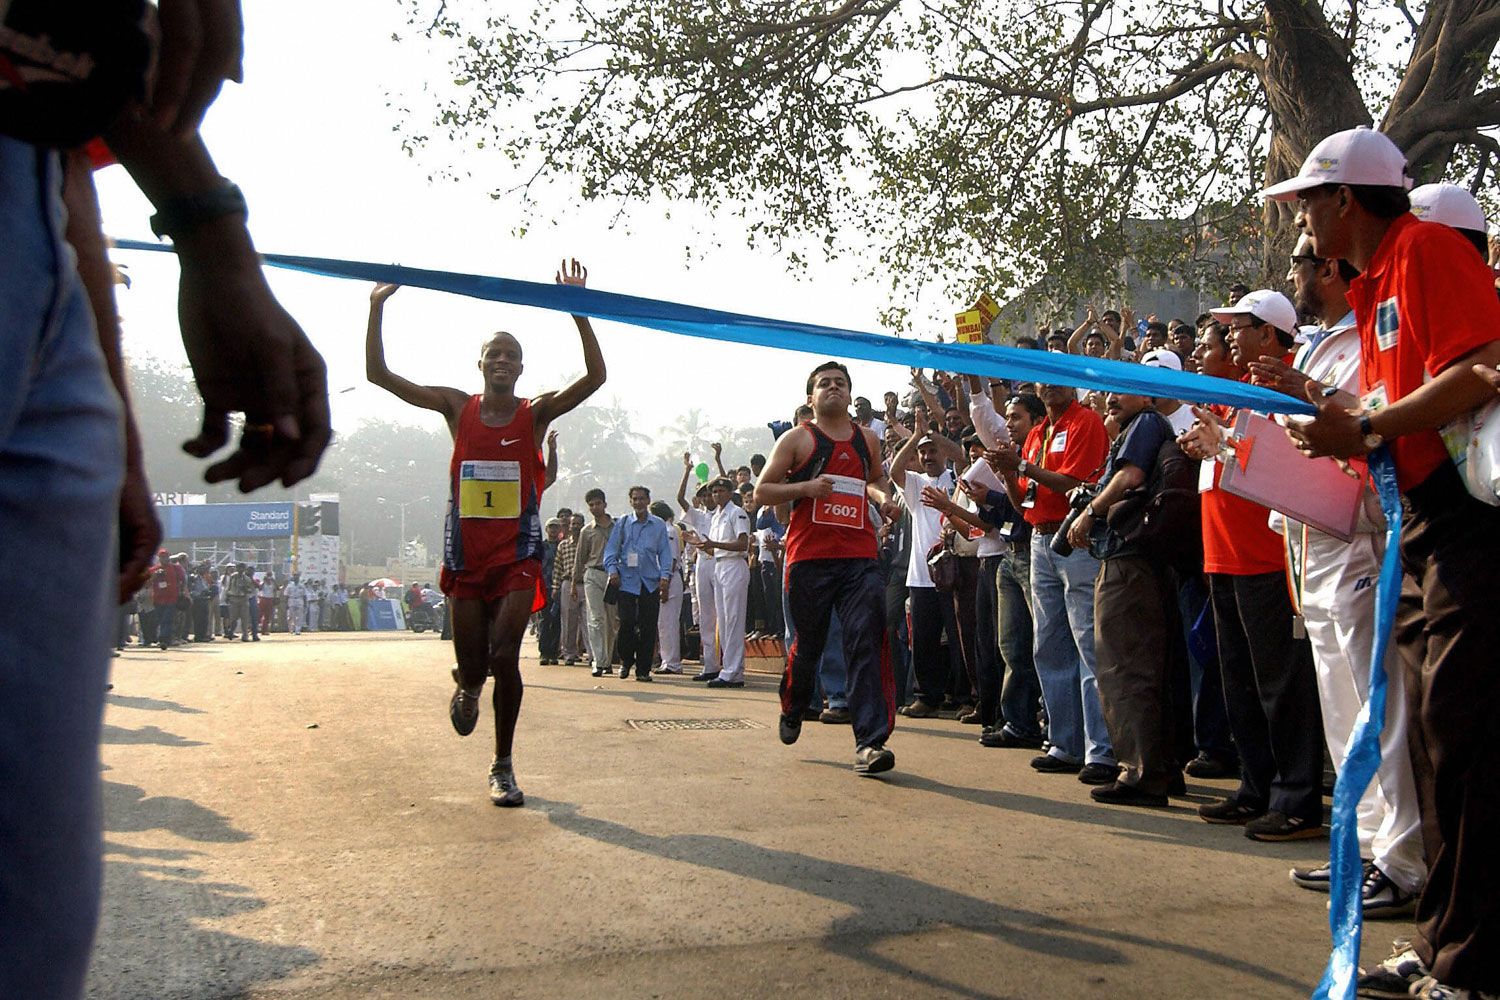 South African marathon runner, Hendrik Ramaala holds his hands in the air as he prepares to cross the finish line to win the 42.2km Bombay International Marathon.